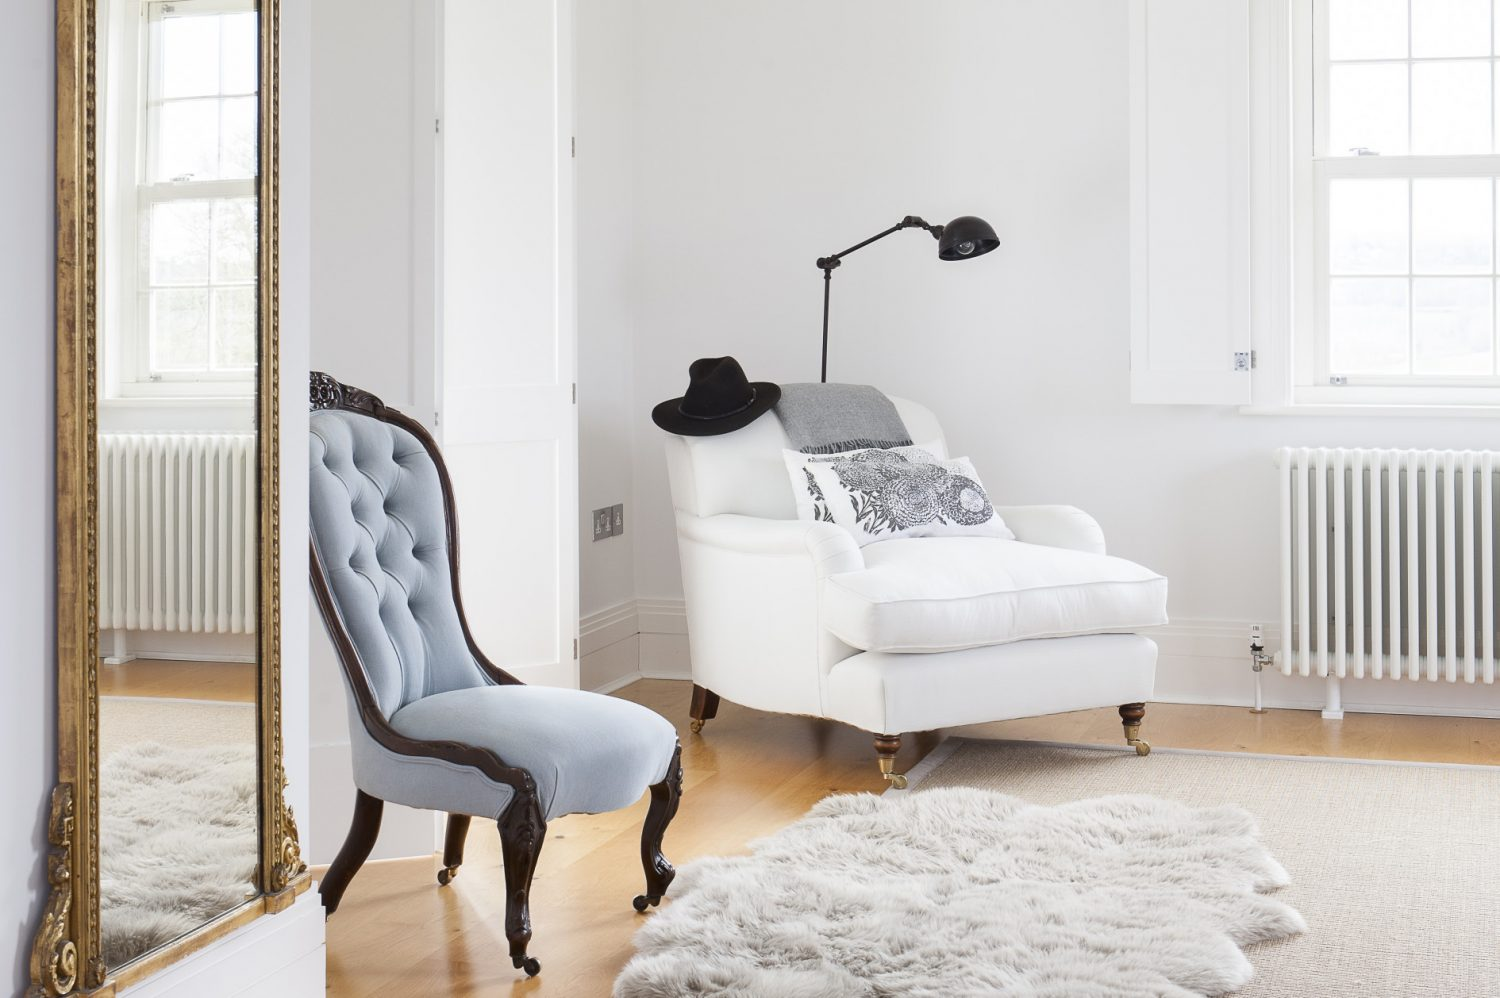 The master bedroom is painted in a very pale, restful grey and is delightfully simple